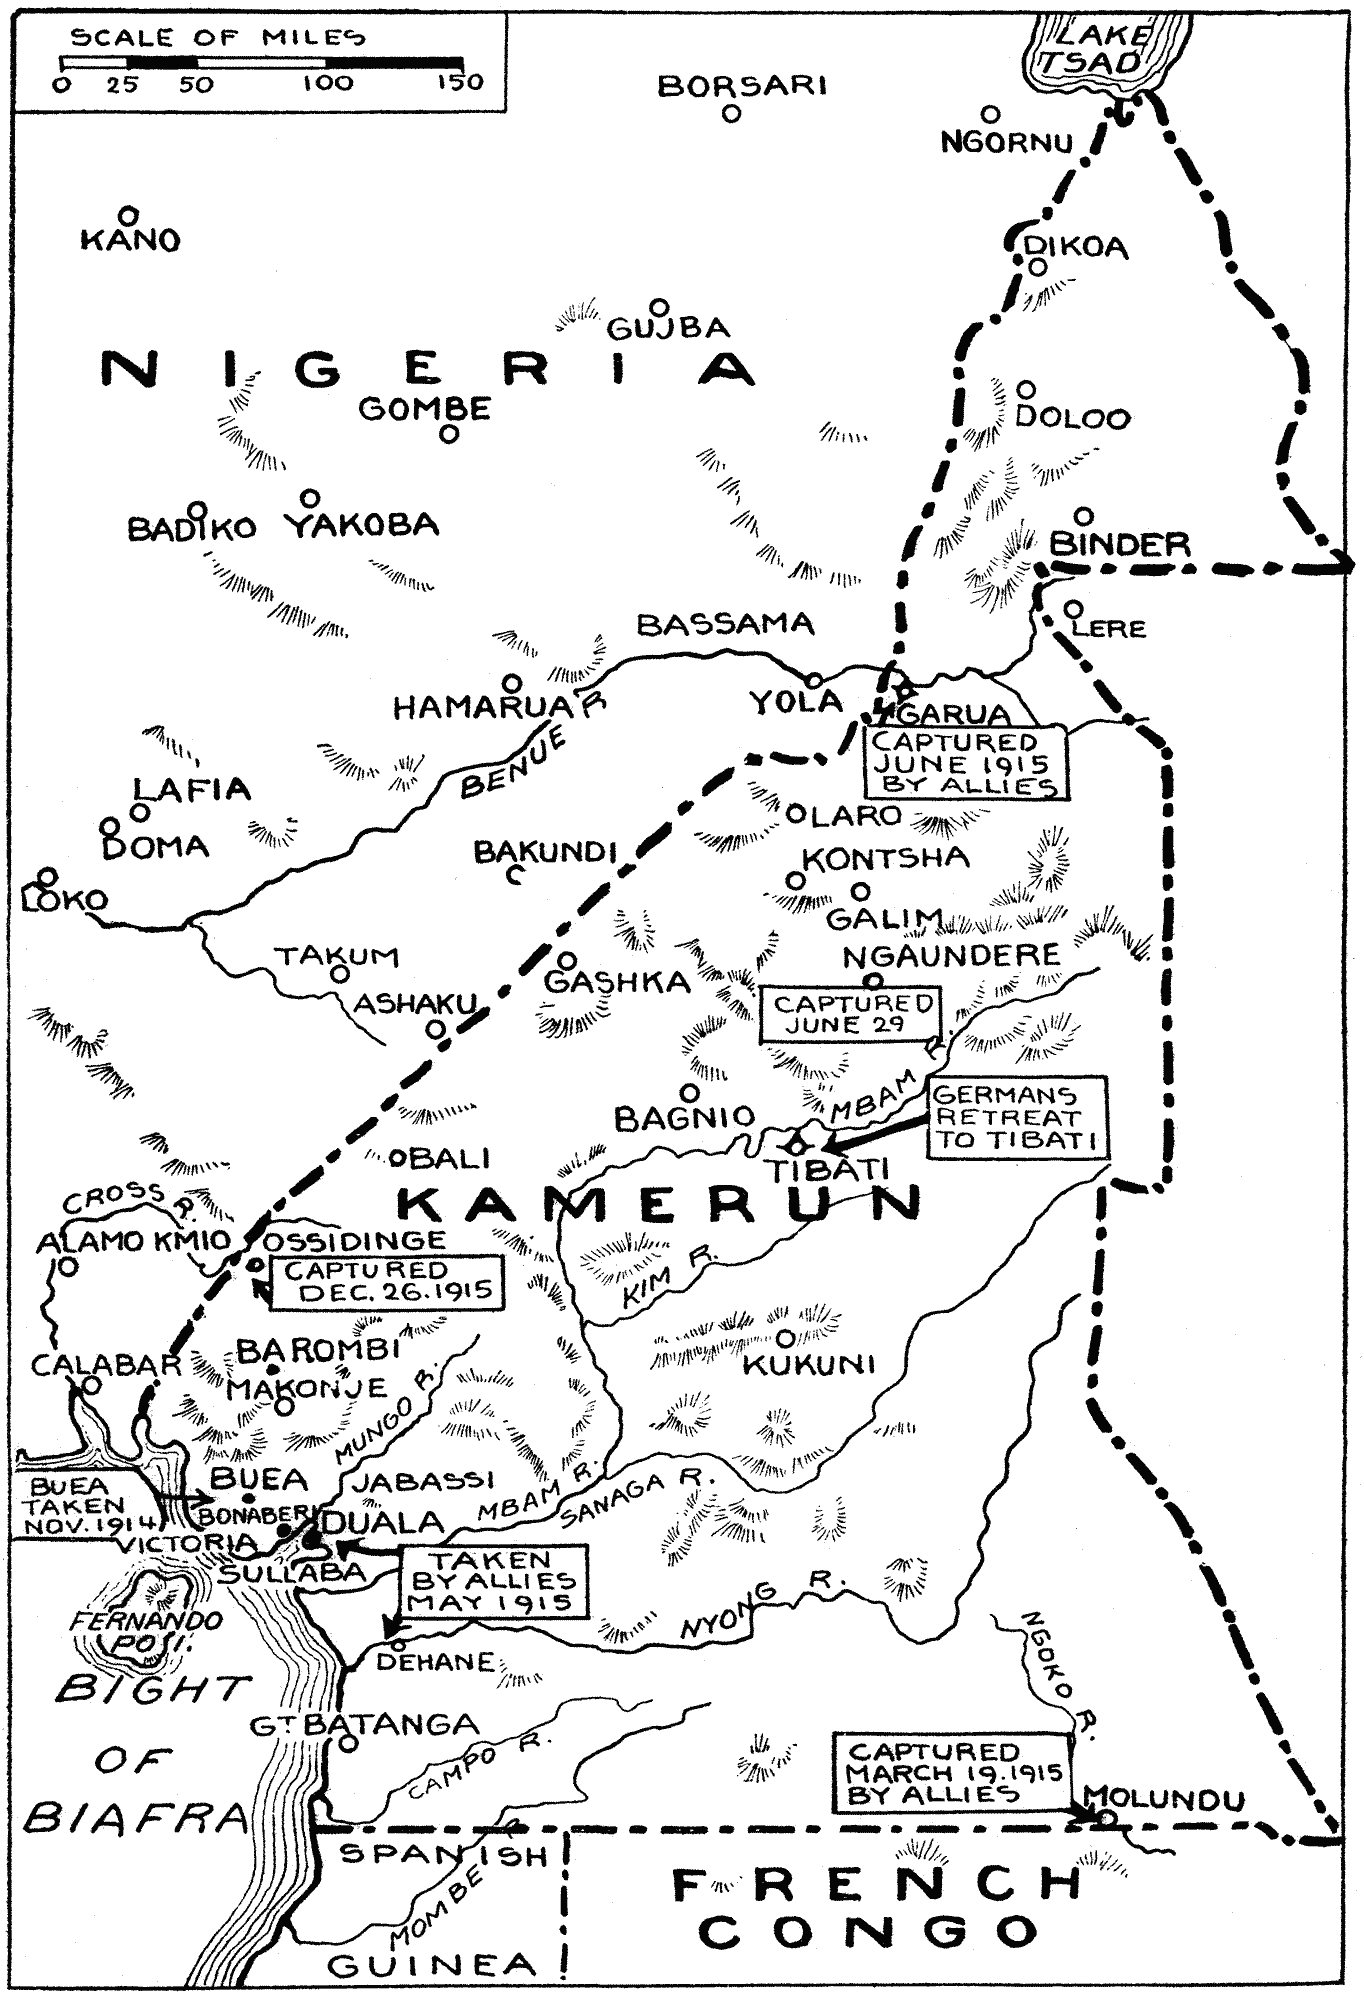 A map of the Kamerun campaign published by the New York Times in 1915